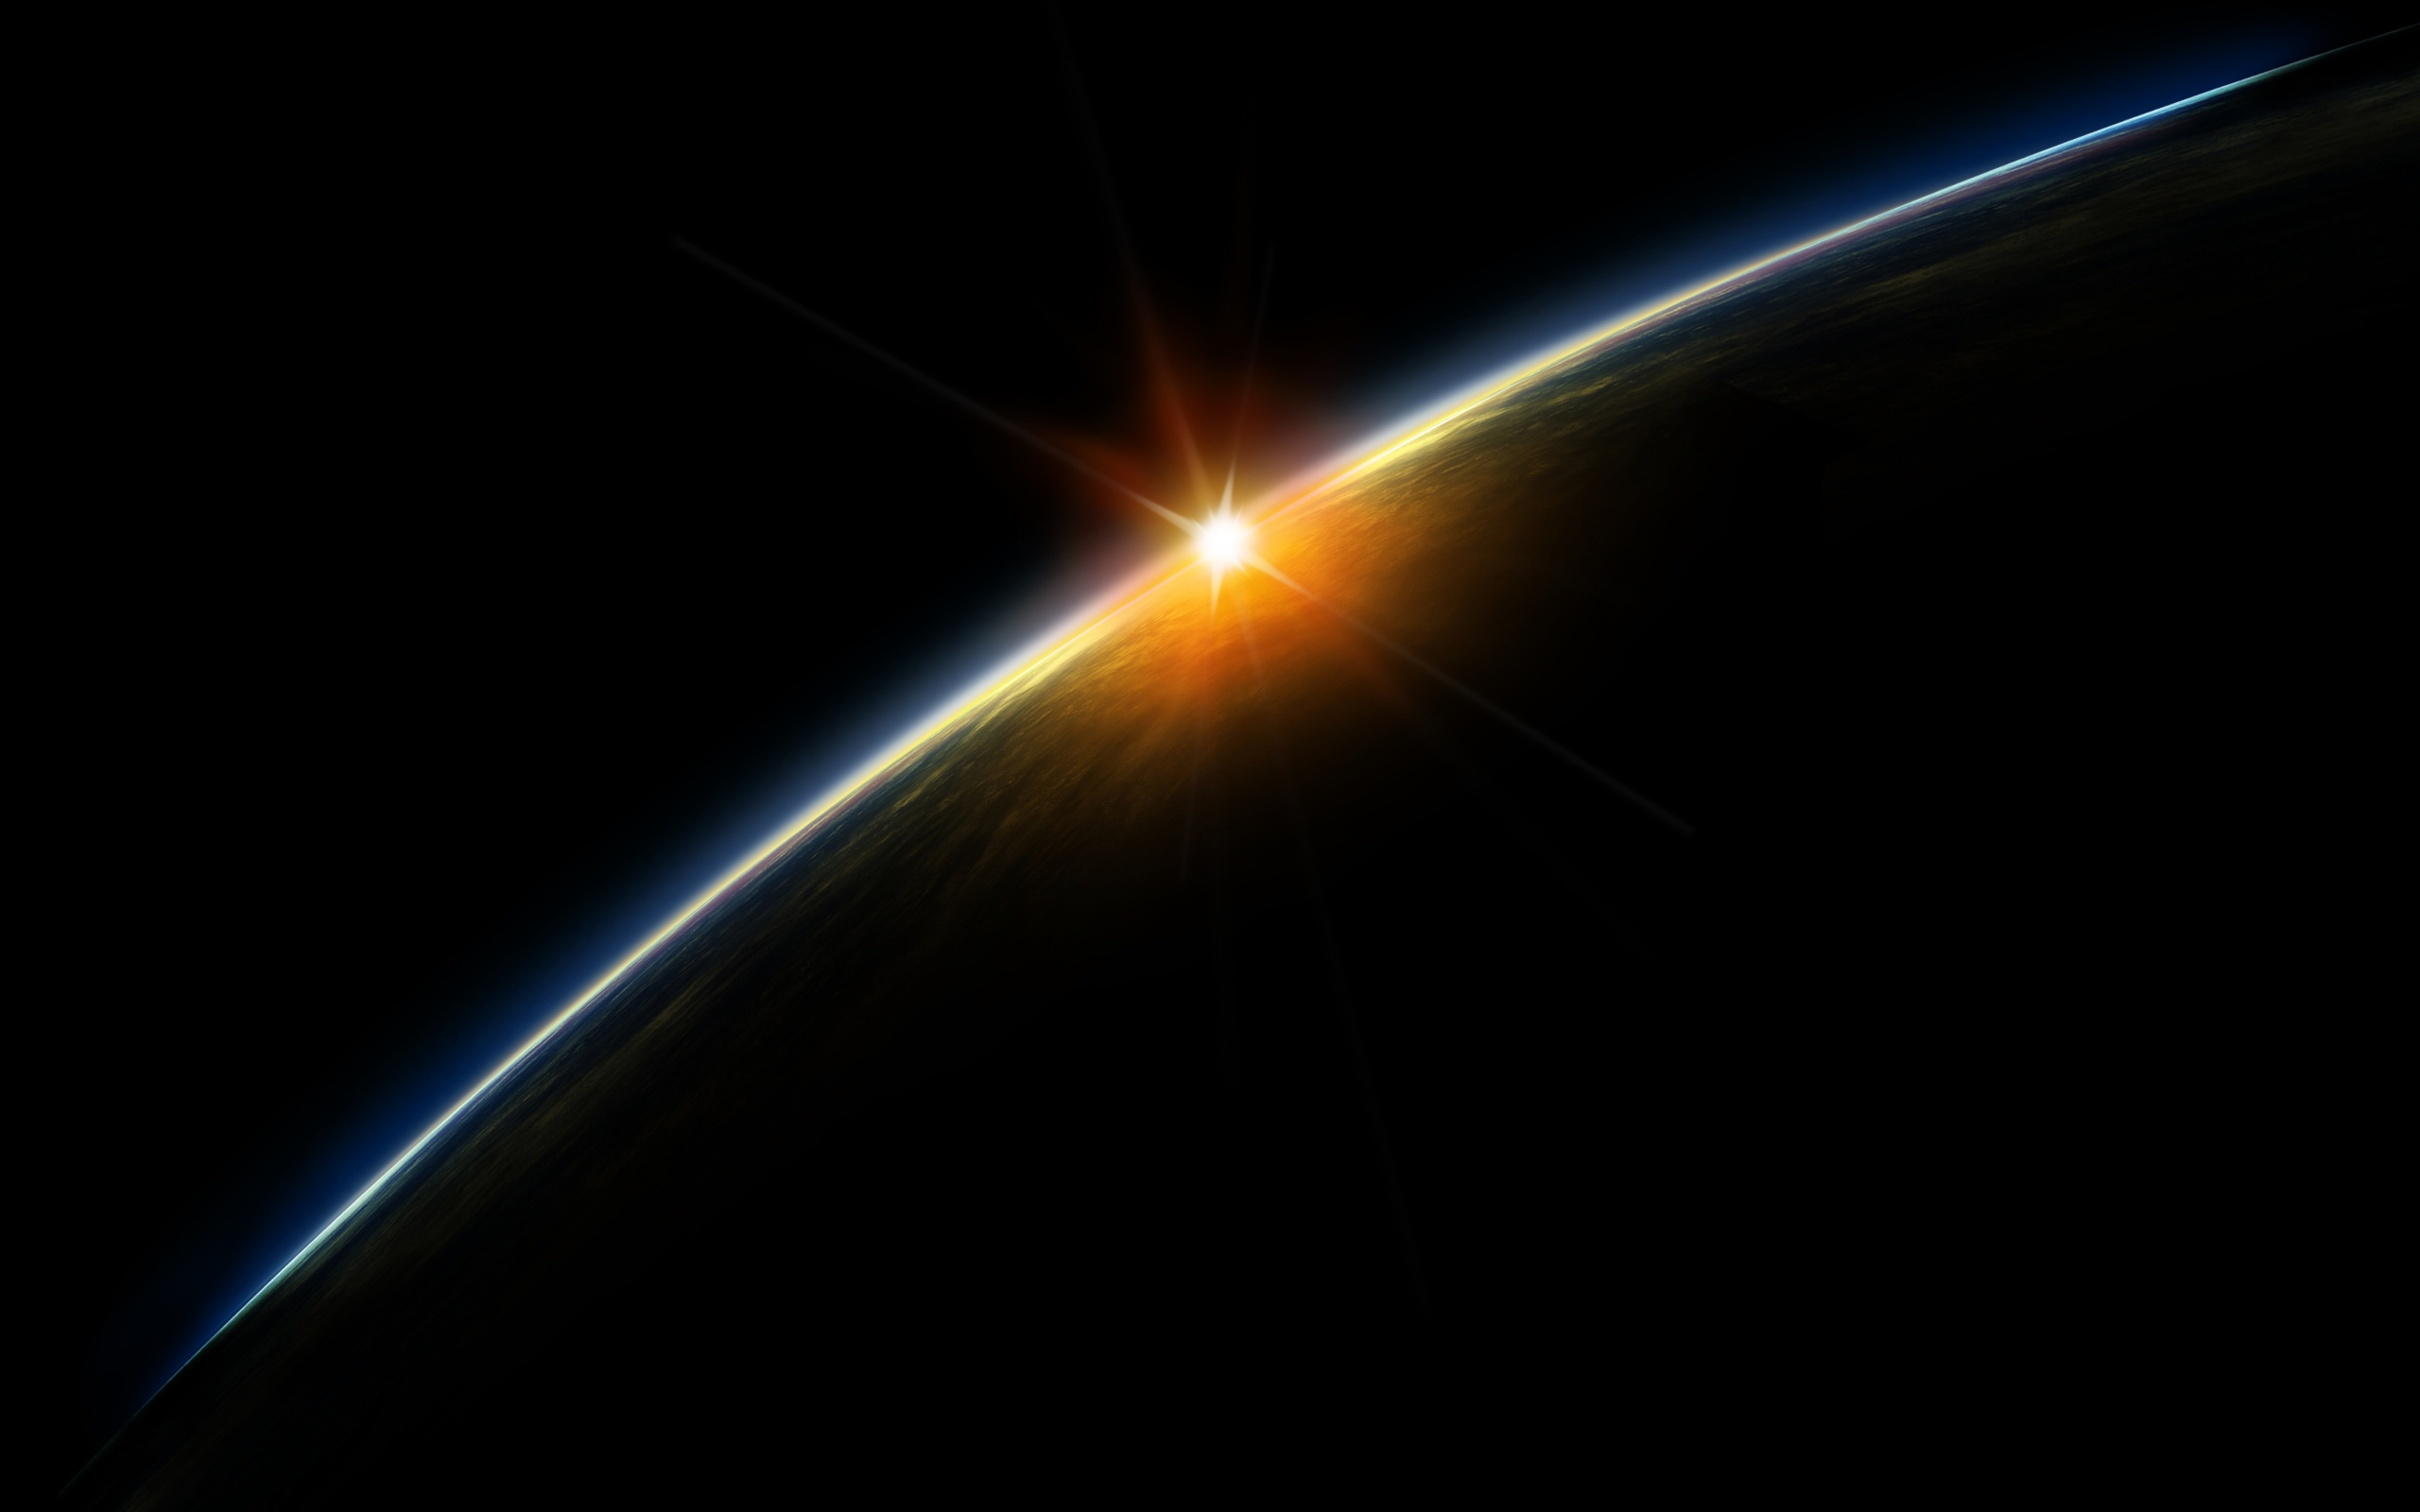 Earth In Space Hd   Pics about space 2560x1600